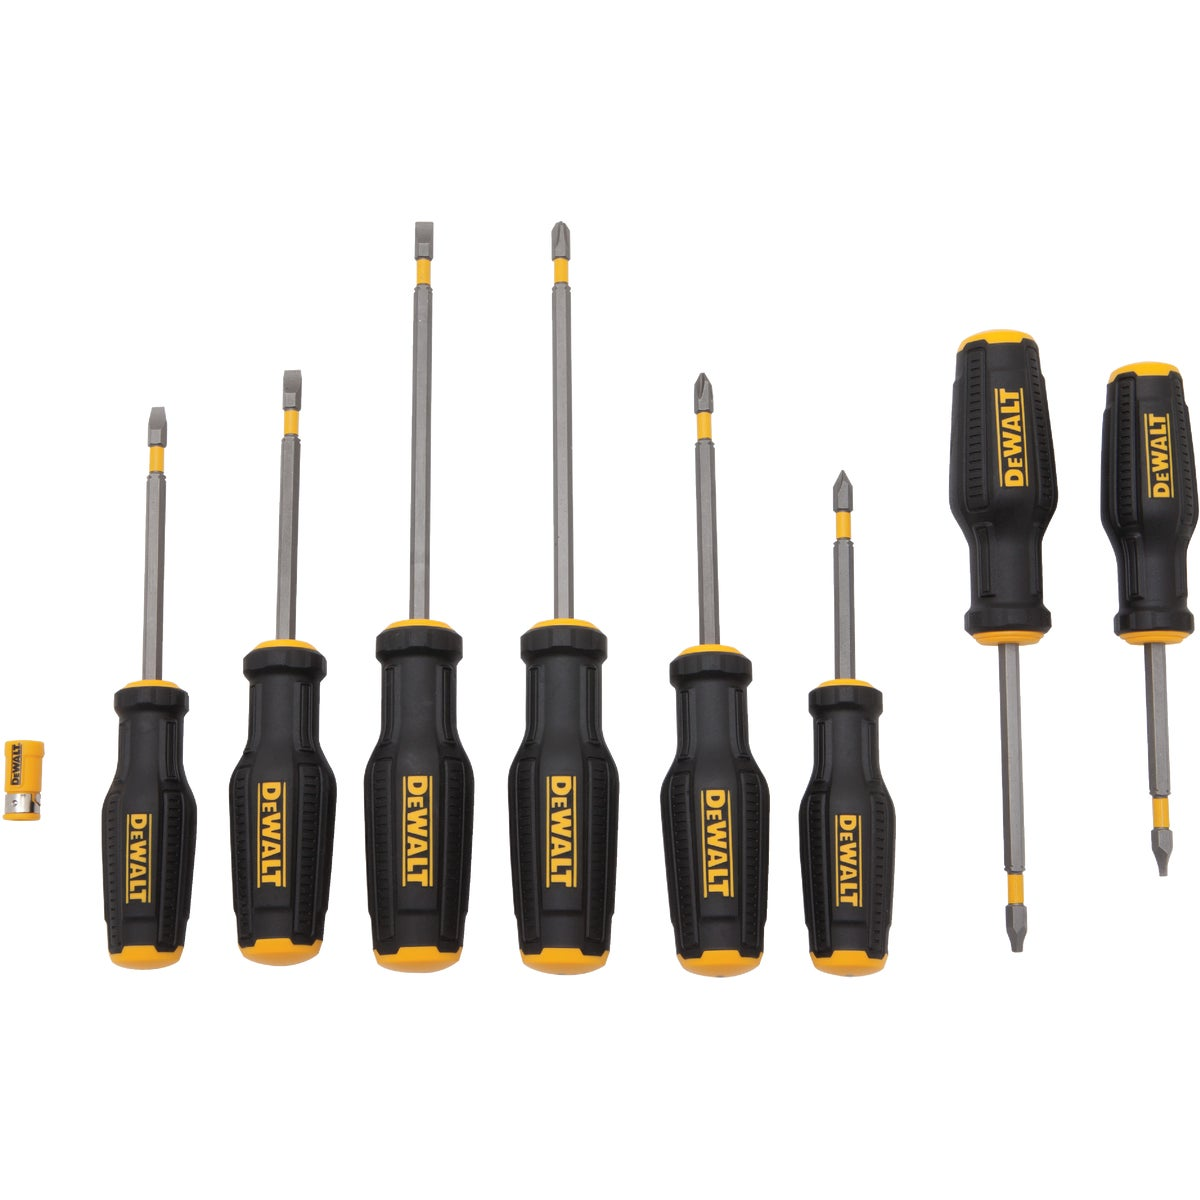 8PC SCREWDRIVER SET - DWHT66409 by Stanley Tools